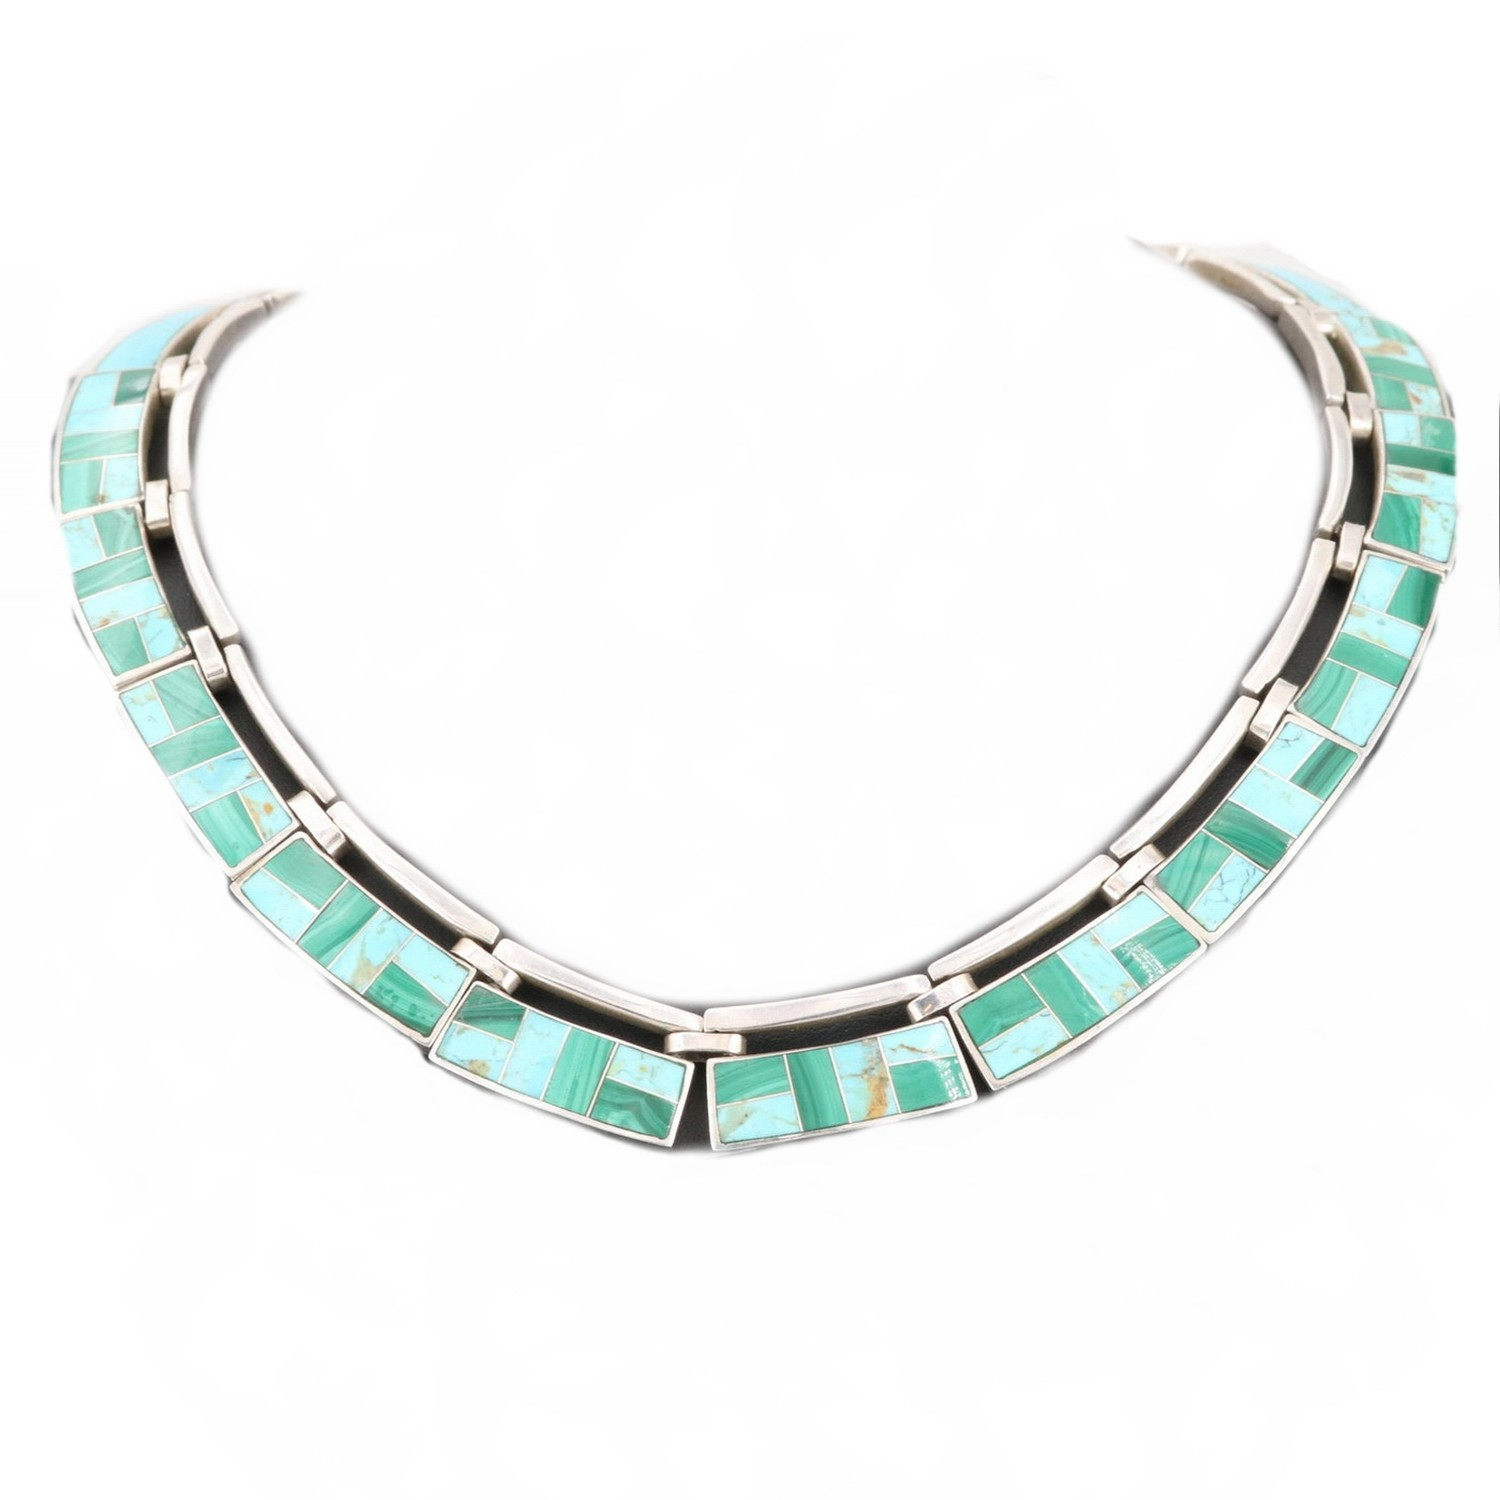 Taxco Turquoise and Malacite Cleopatra Necklace